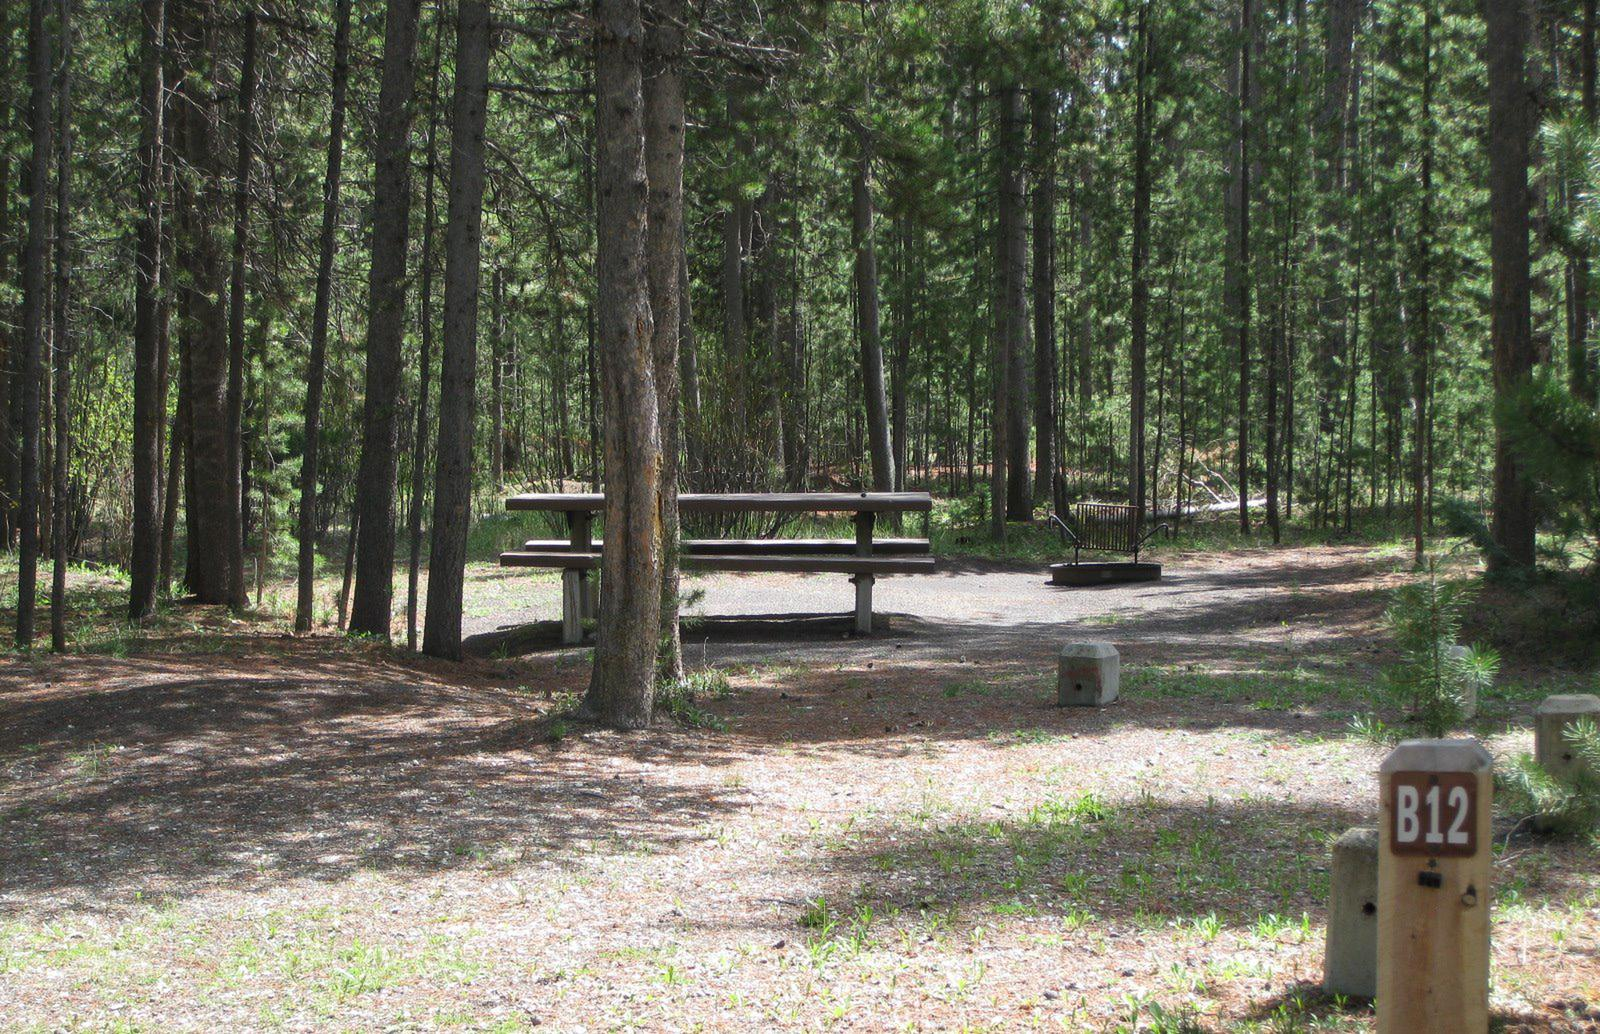 Site B12, surrounded by pine trees, picnic table & fire ringSite B12